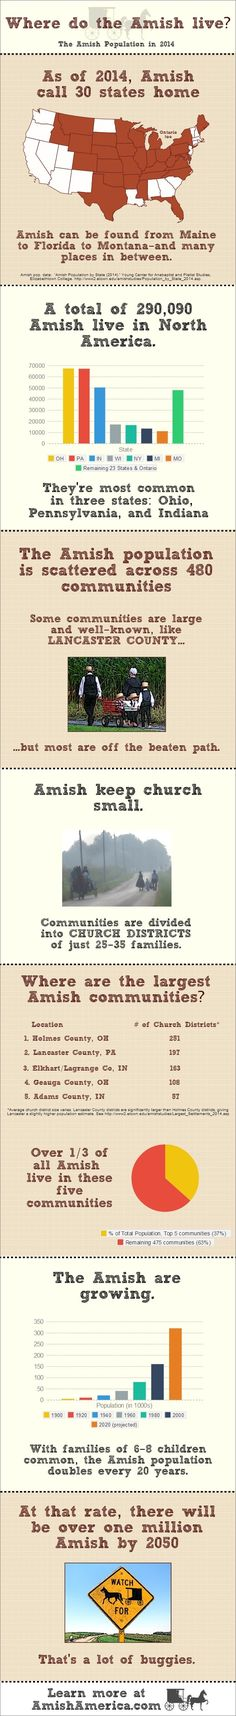 With a population that doubles roughly every 20 years, the Amish are on pace to cross the 300,000-person threshold within the next year or two. As of 2014, the Amish have set up shop in 30 states (plus Ontario), from traditional strongholds such as Pennsylvania and Indiana to more recent communities in Colorado, Maine, and Tennessee.